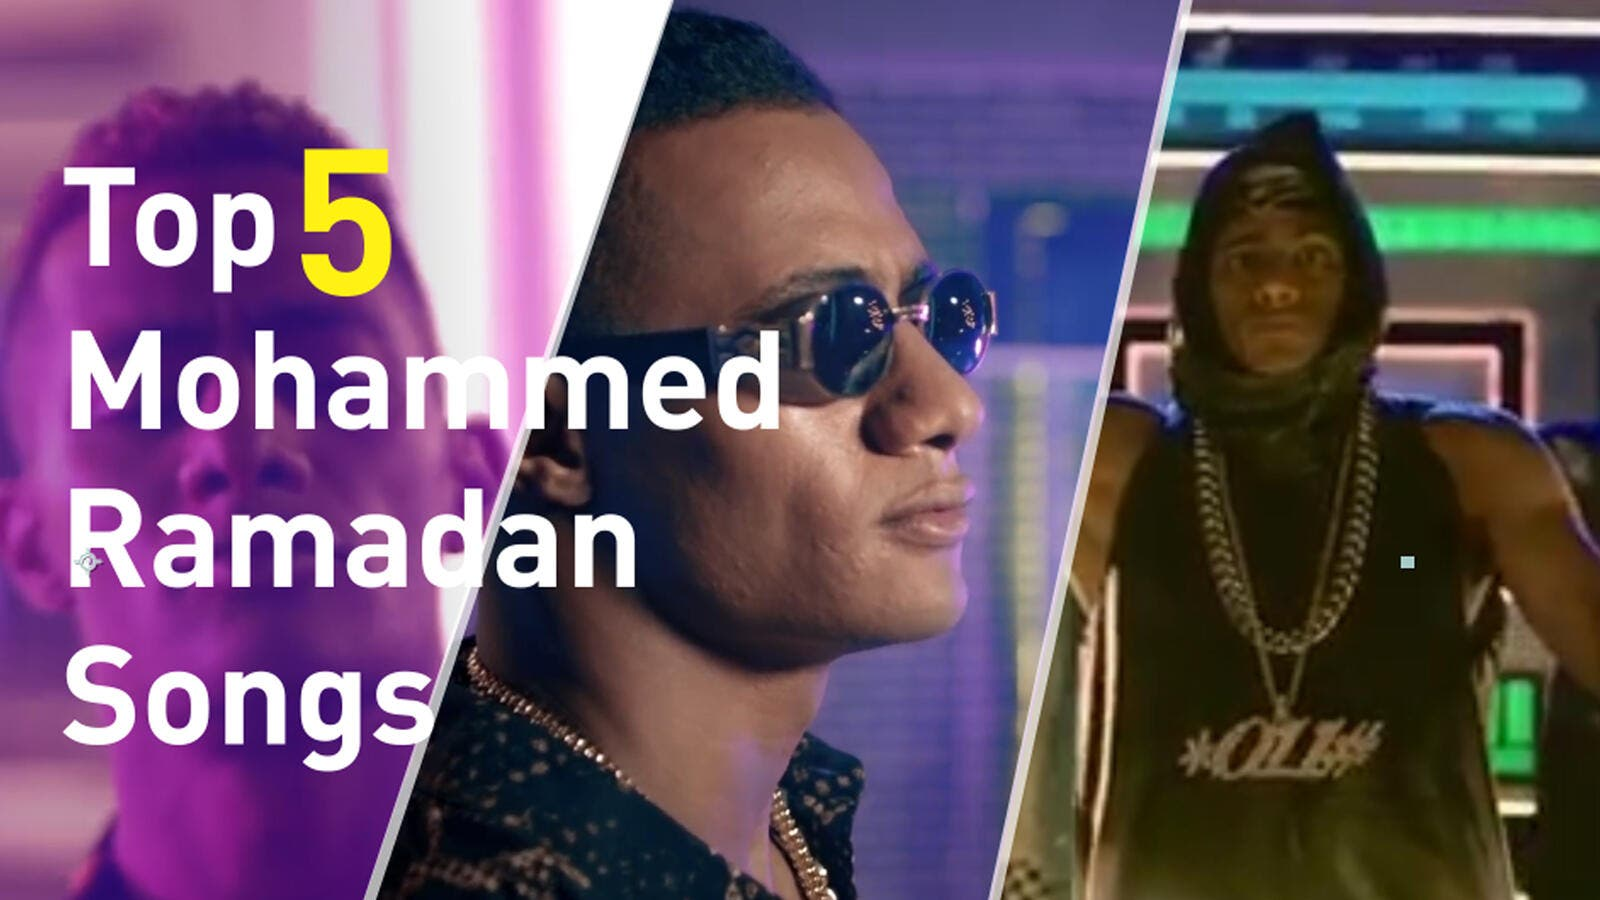 Get pumped for the Mohammad Ramadan Top 5